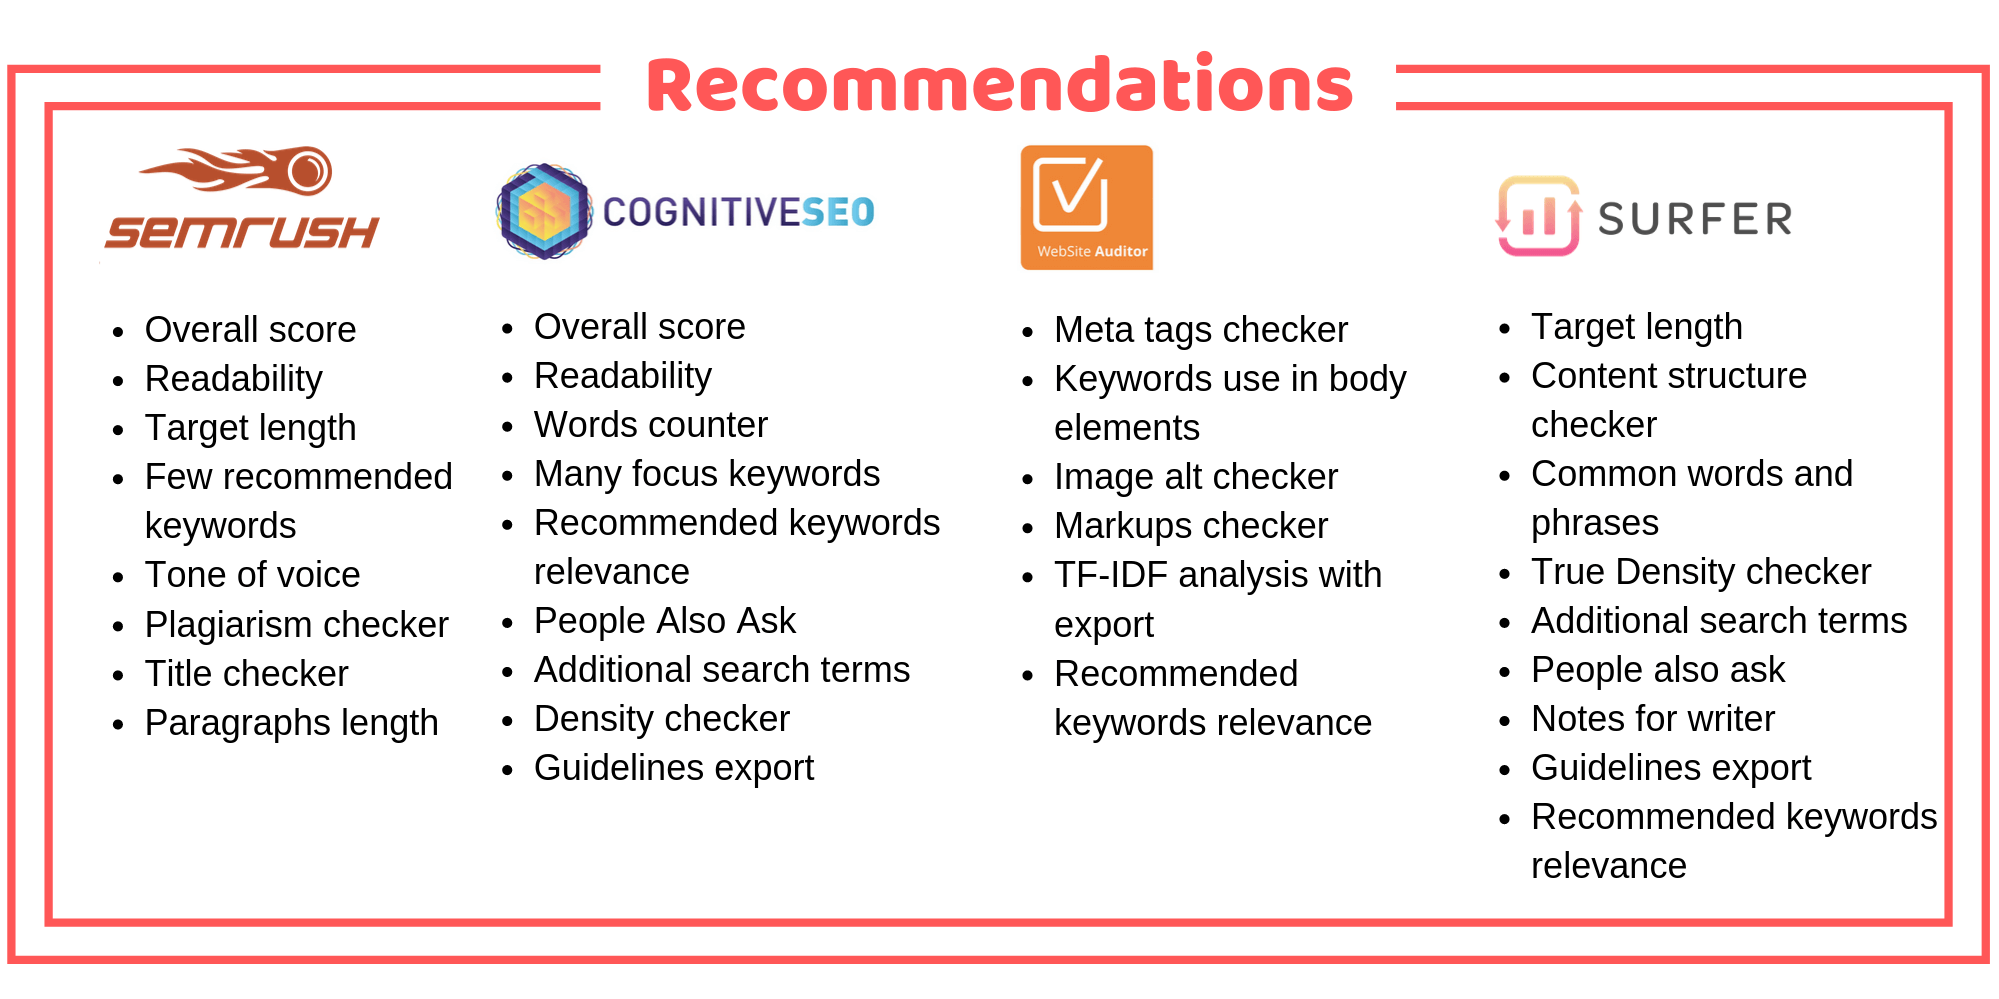 Content Recommendations Comparison of SEMrush, cognitiveSEO, Website Auditor, and Surfer